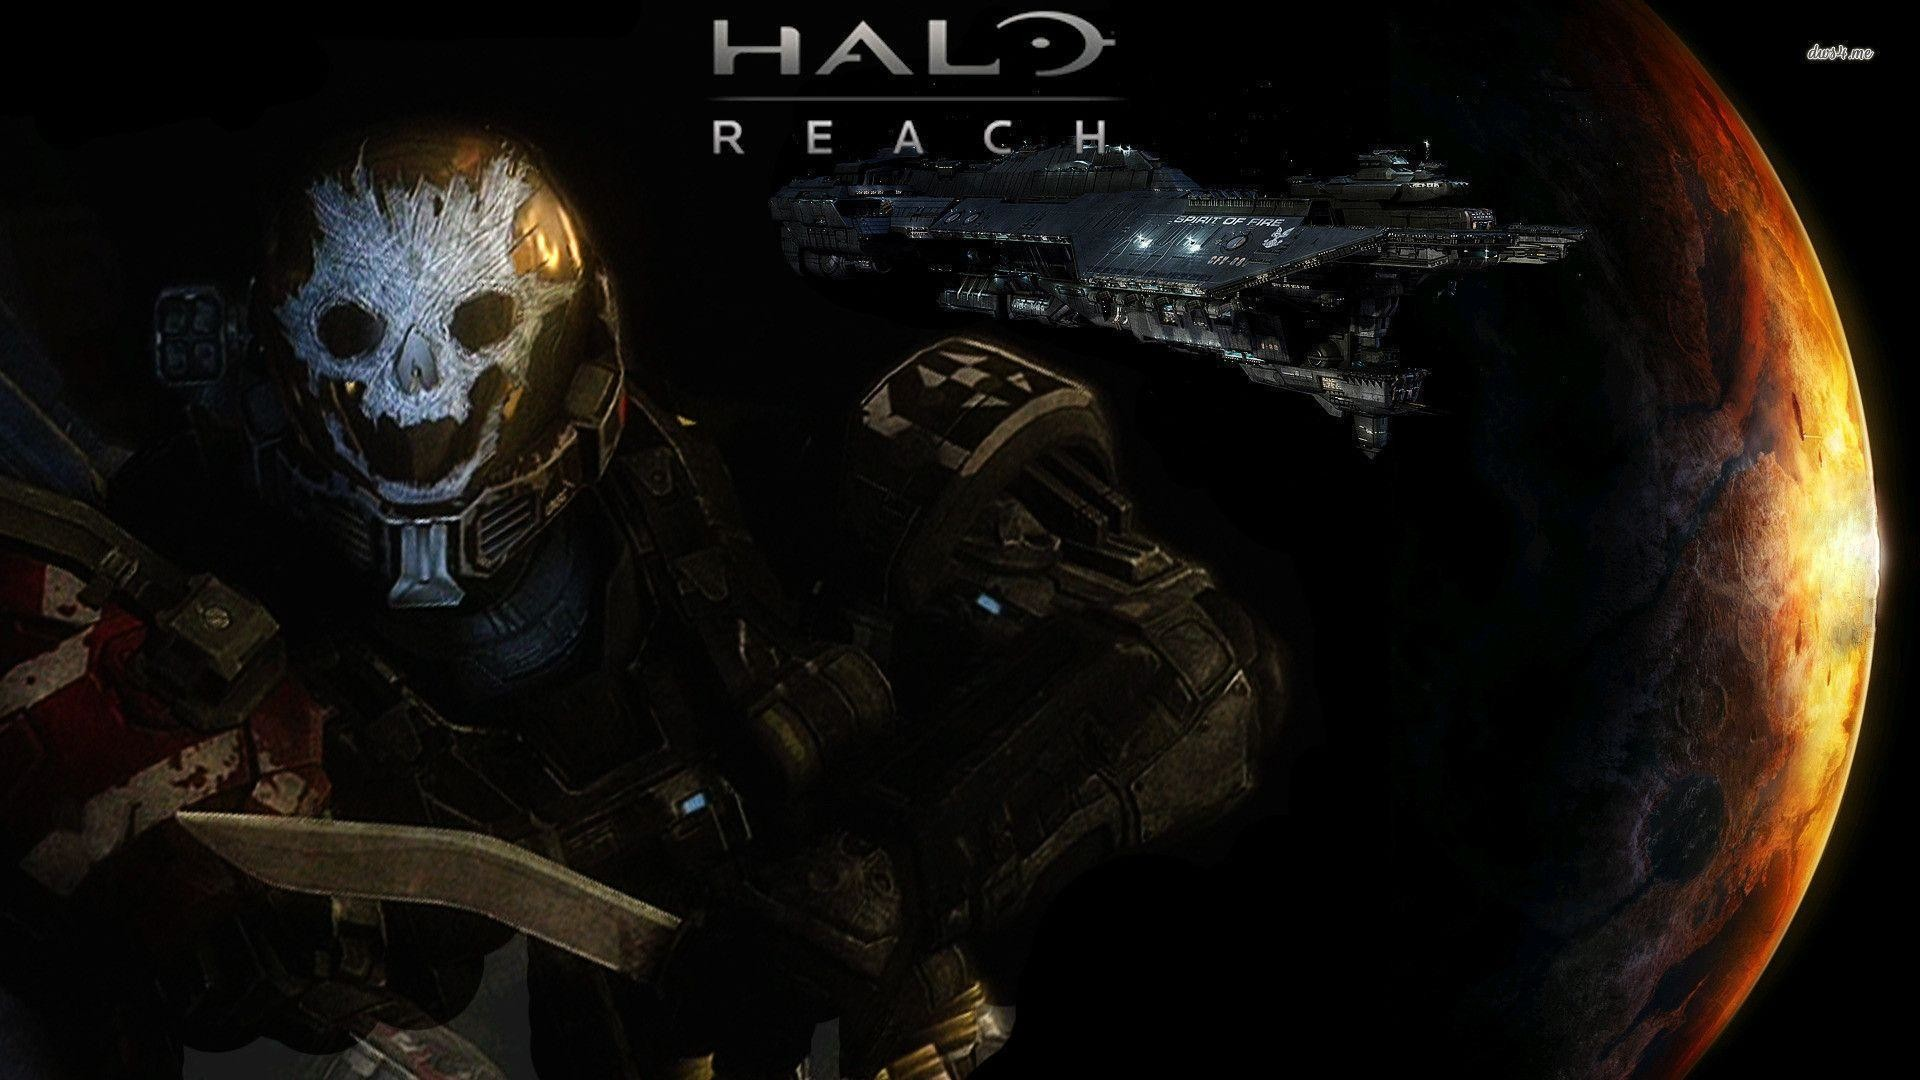 1920x1080 New Halo Reach Wallpaper, HQ Backgrounds | HD wallpapers Gallery .